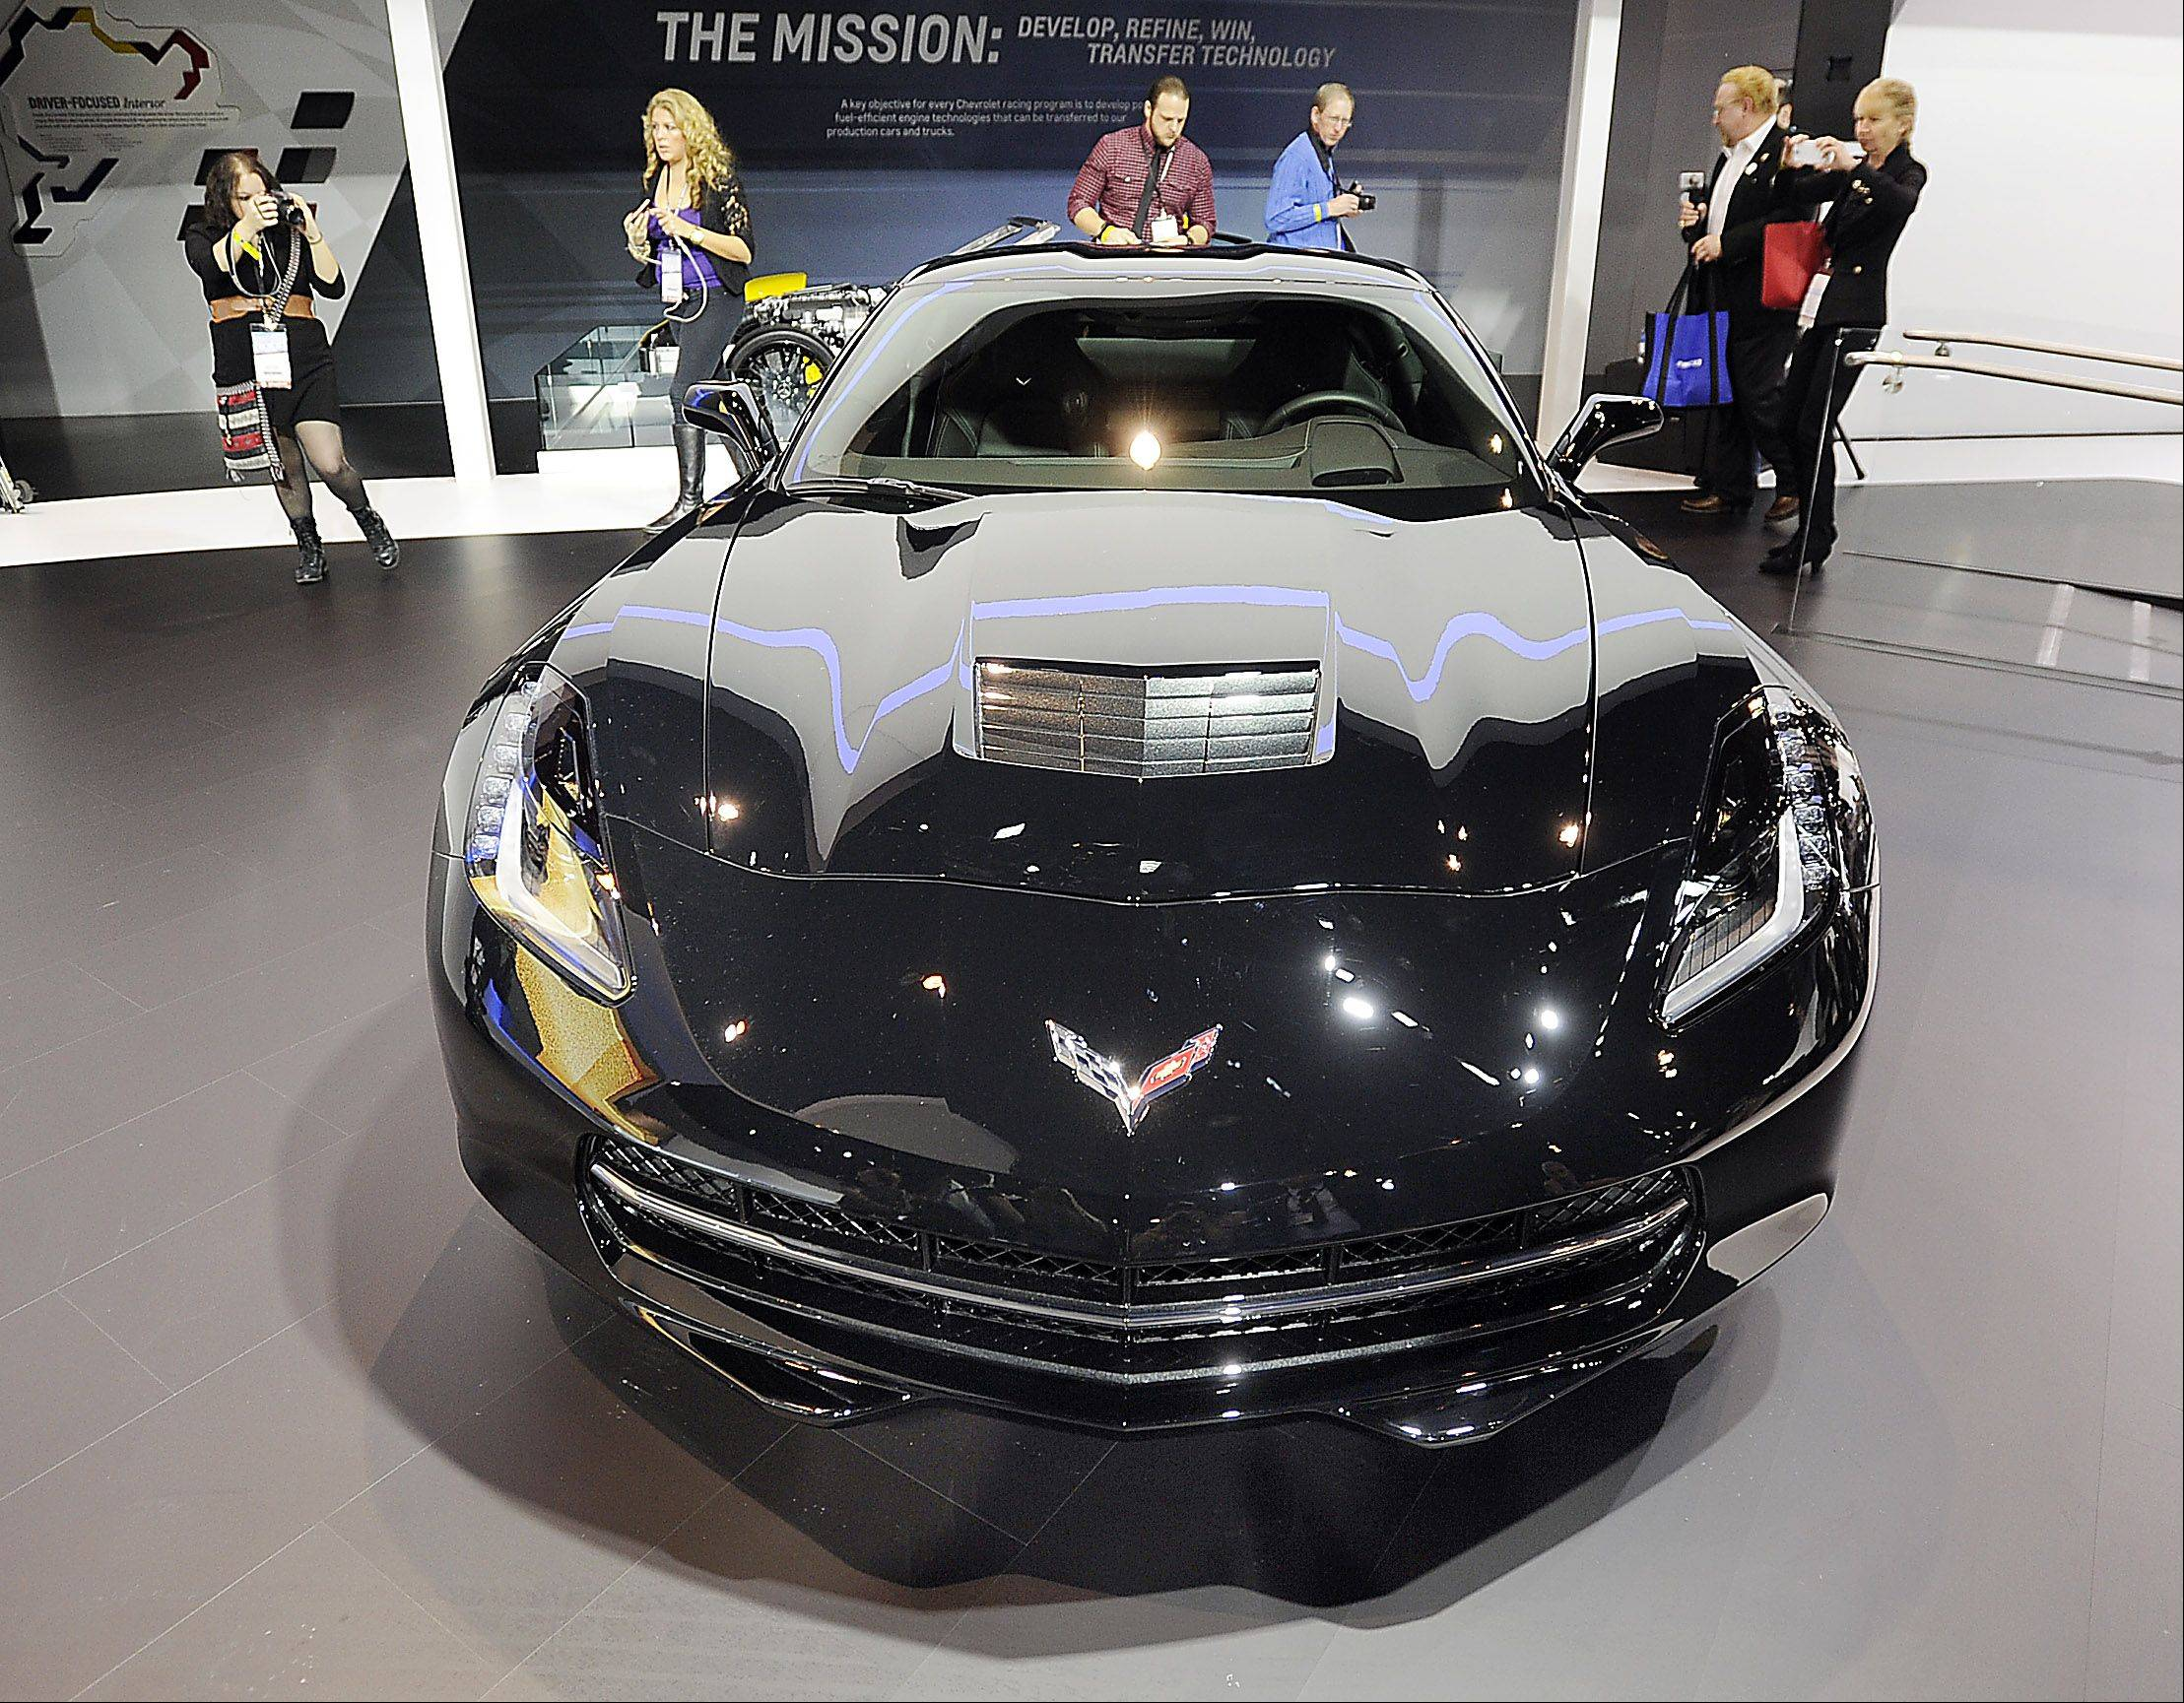 Mark Welsh/mwelsh@dailyherald.comThe 2015 Chevrolet Corvette Stingray promises to get Corvette fans misty-eyed at the Chicago Auto Show.